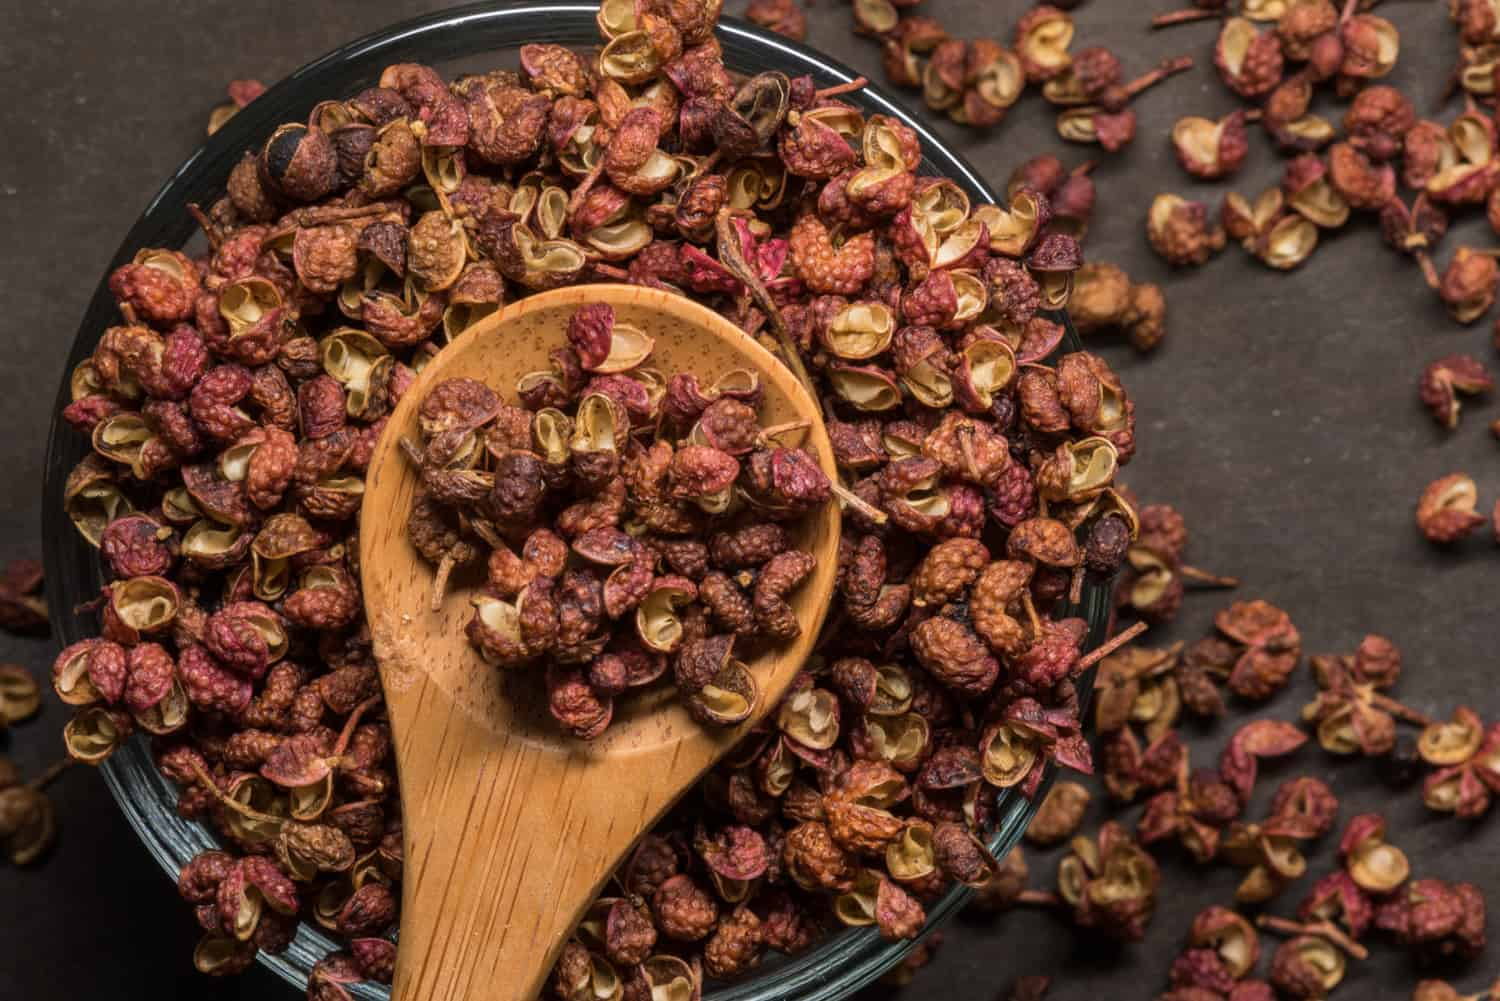 Szechuan Peppercorns in Wooden Spoon With Glass Bowl and spill over